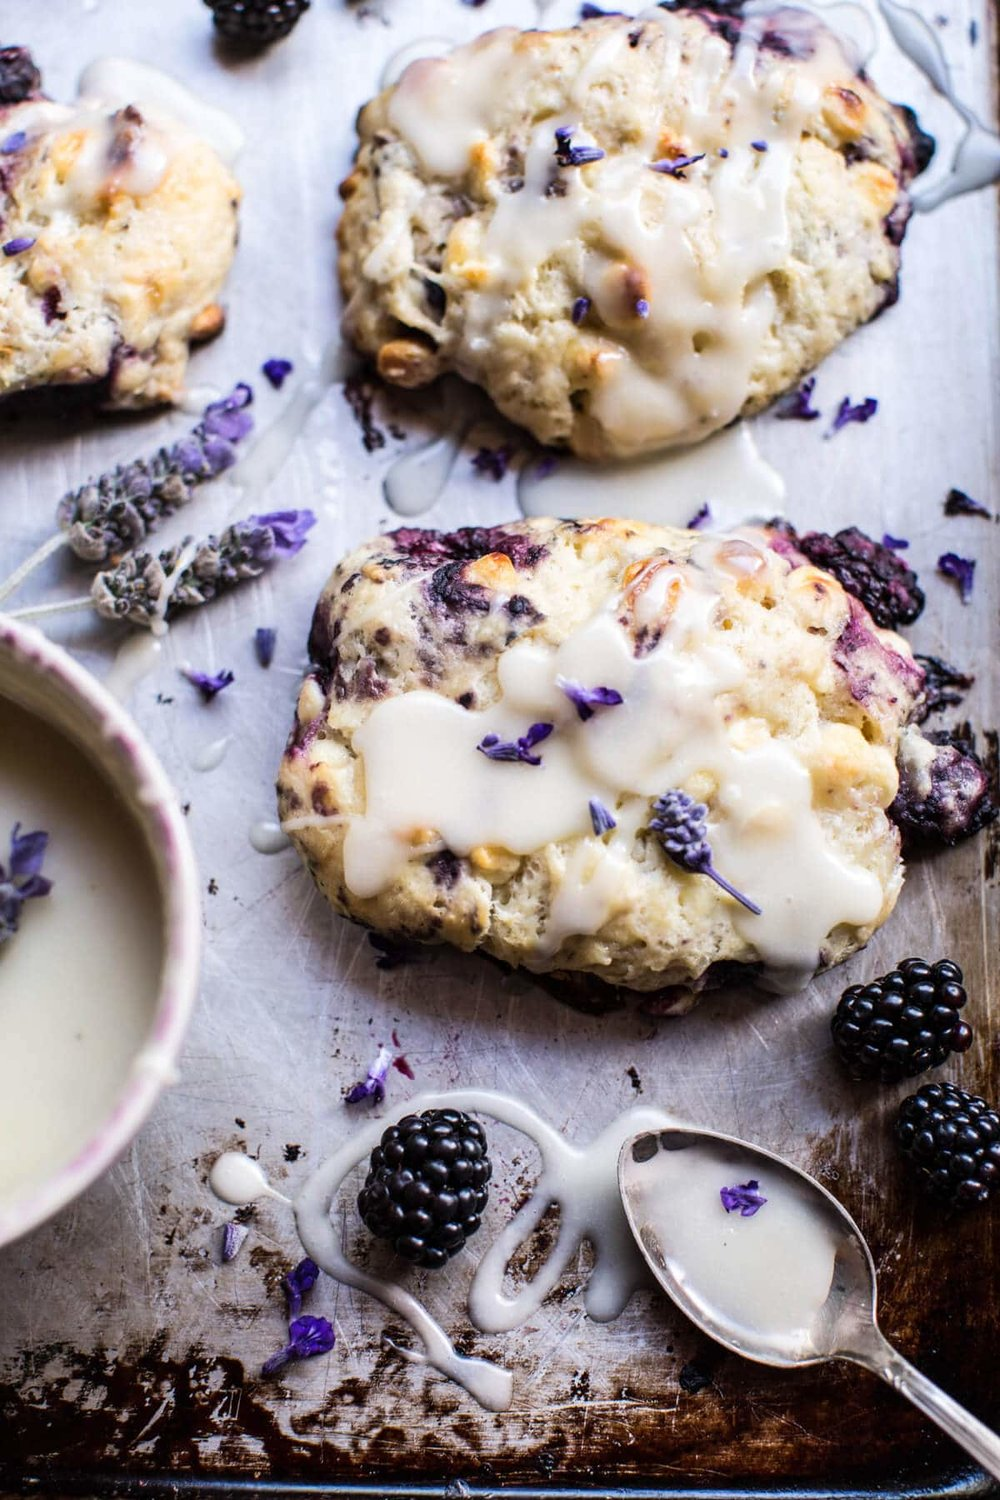 Blackberry-Lavender-White-Chocolate-Scones-9.jpg